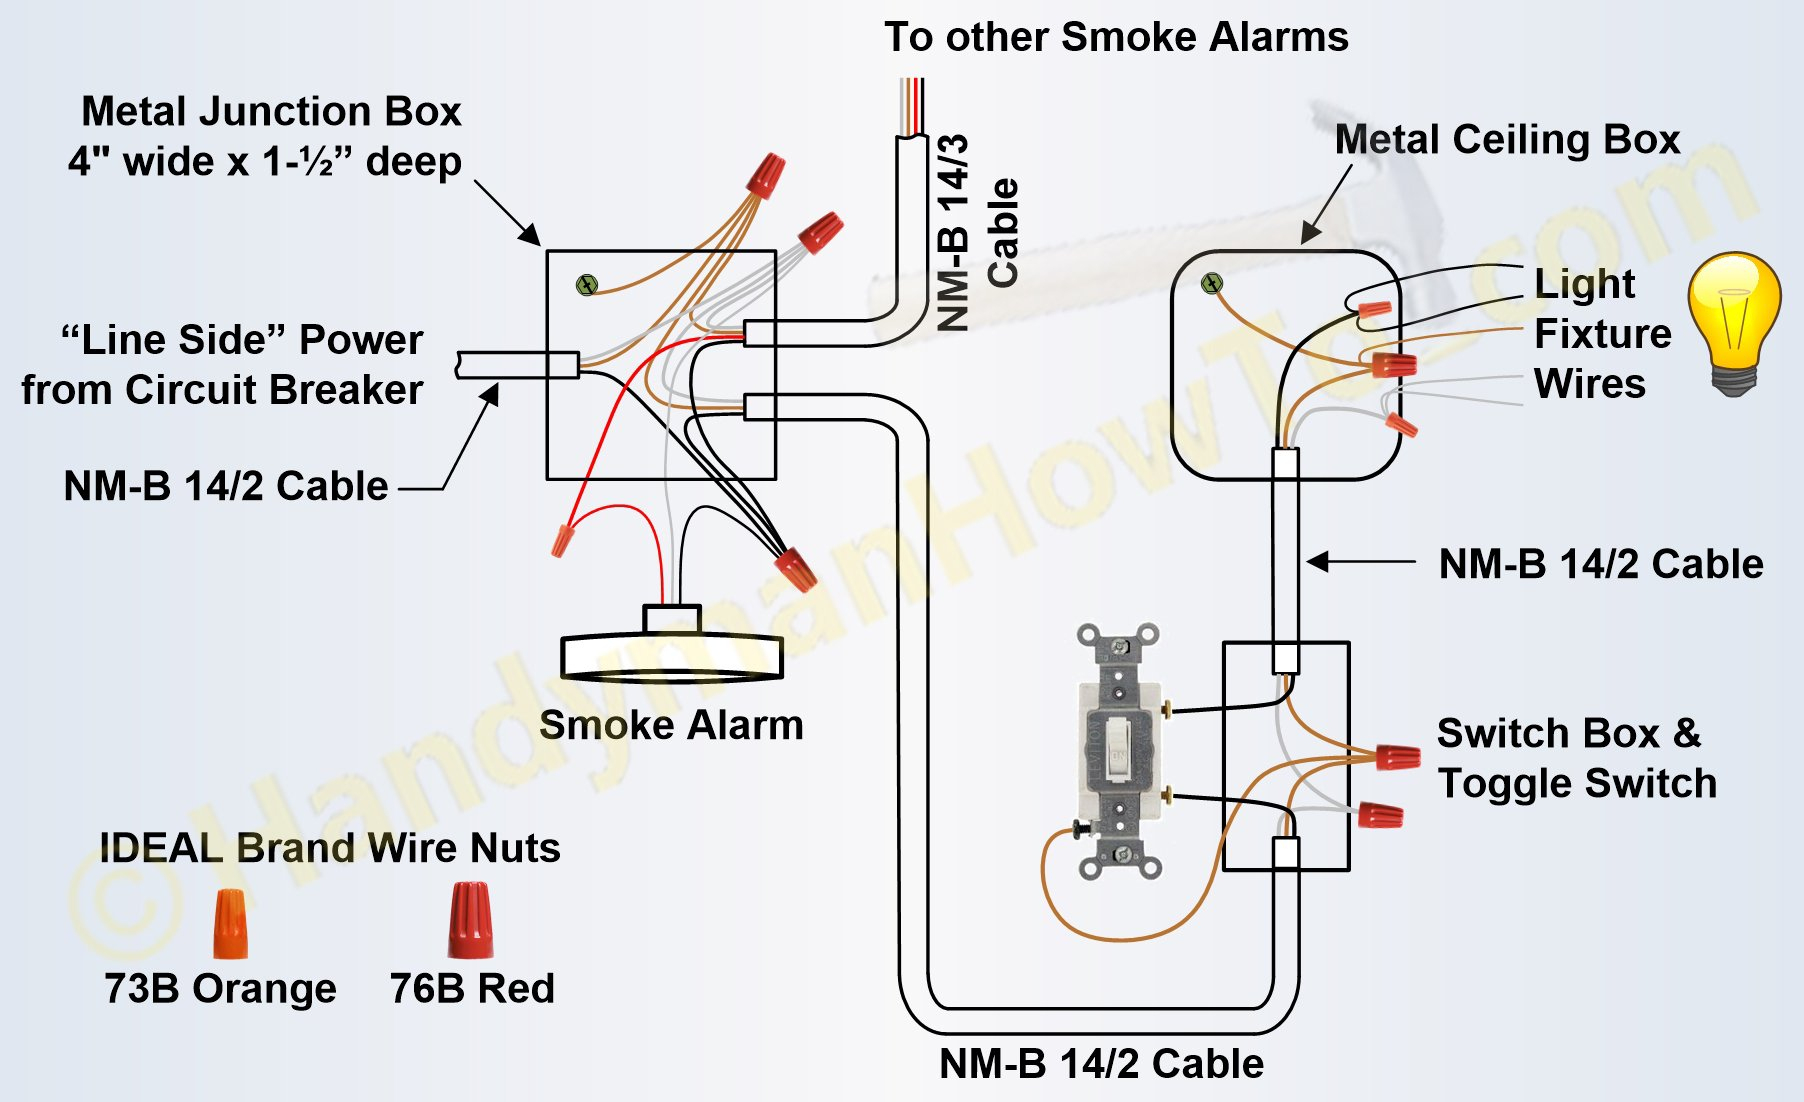 How To Install A Hardwired Smoke Alarm - Ac Power And Alarm Wiring - Nest Protect Wiring Diagram